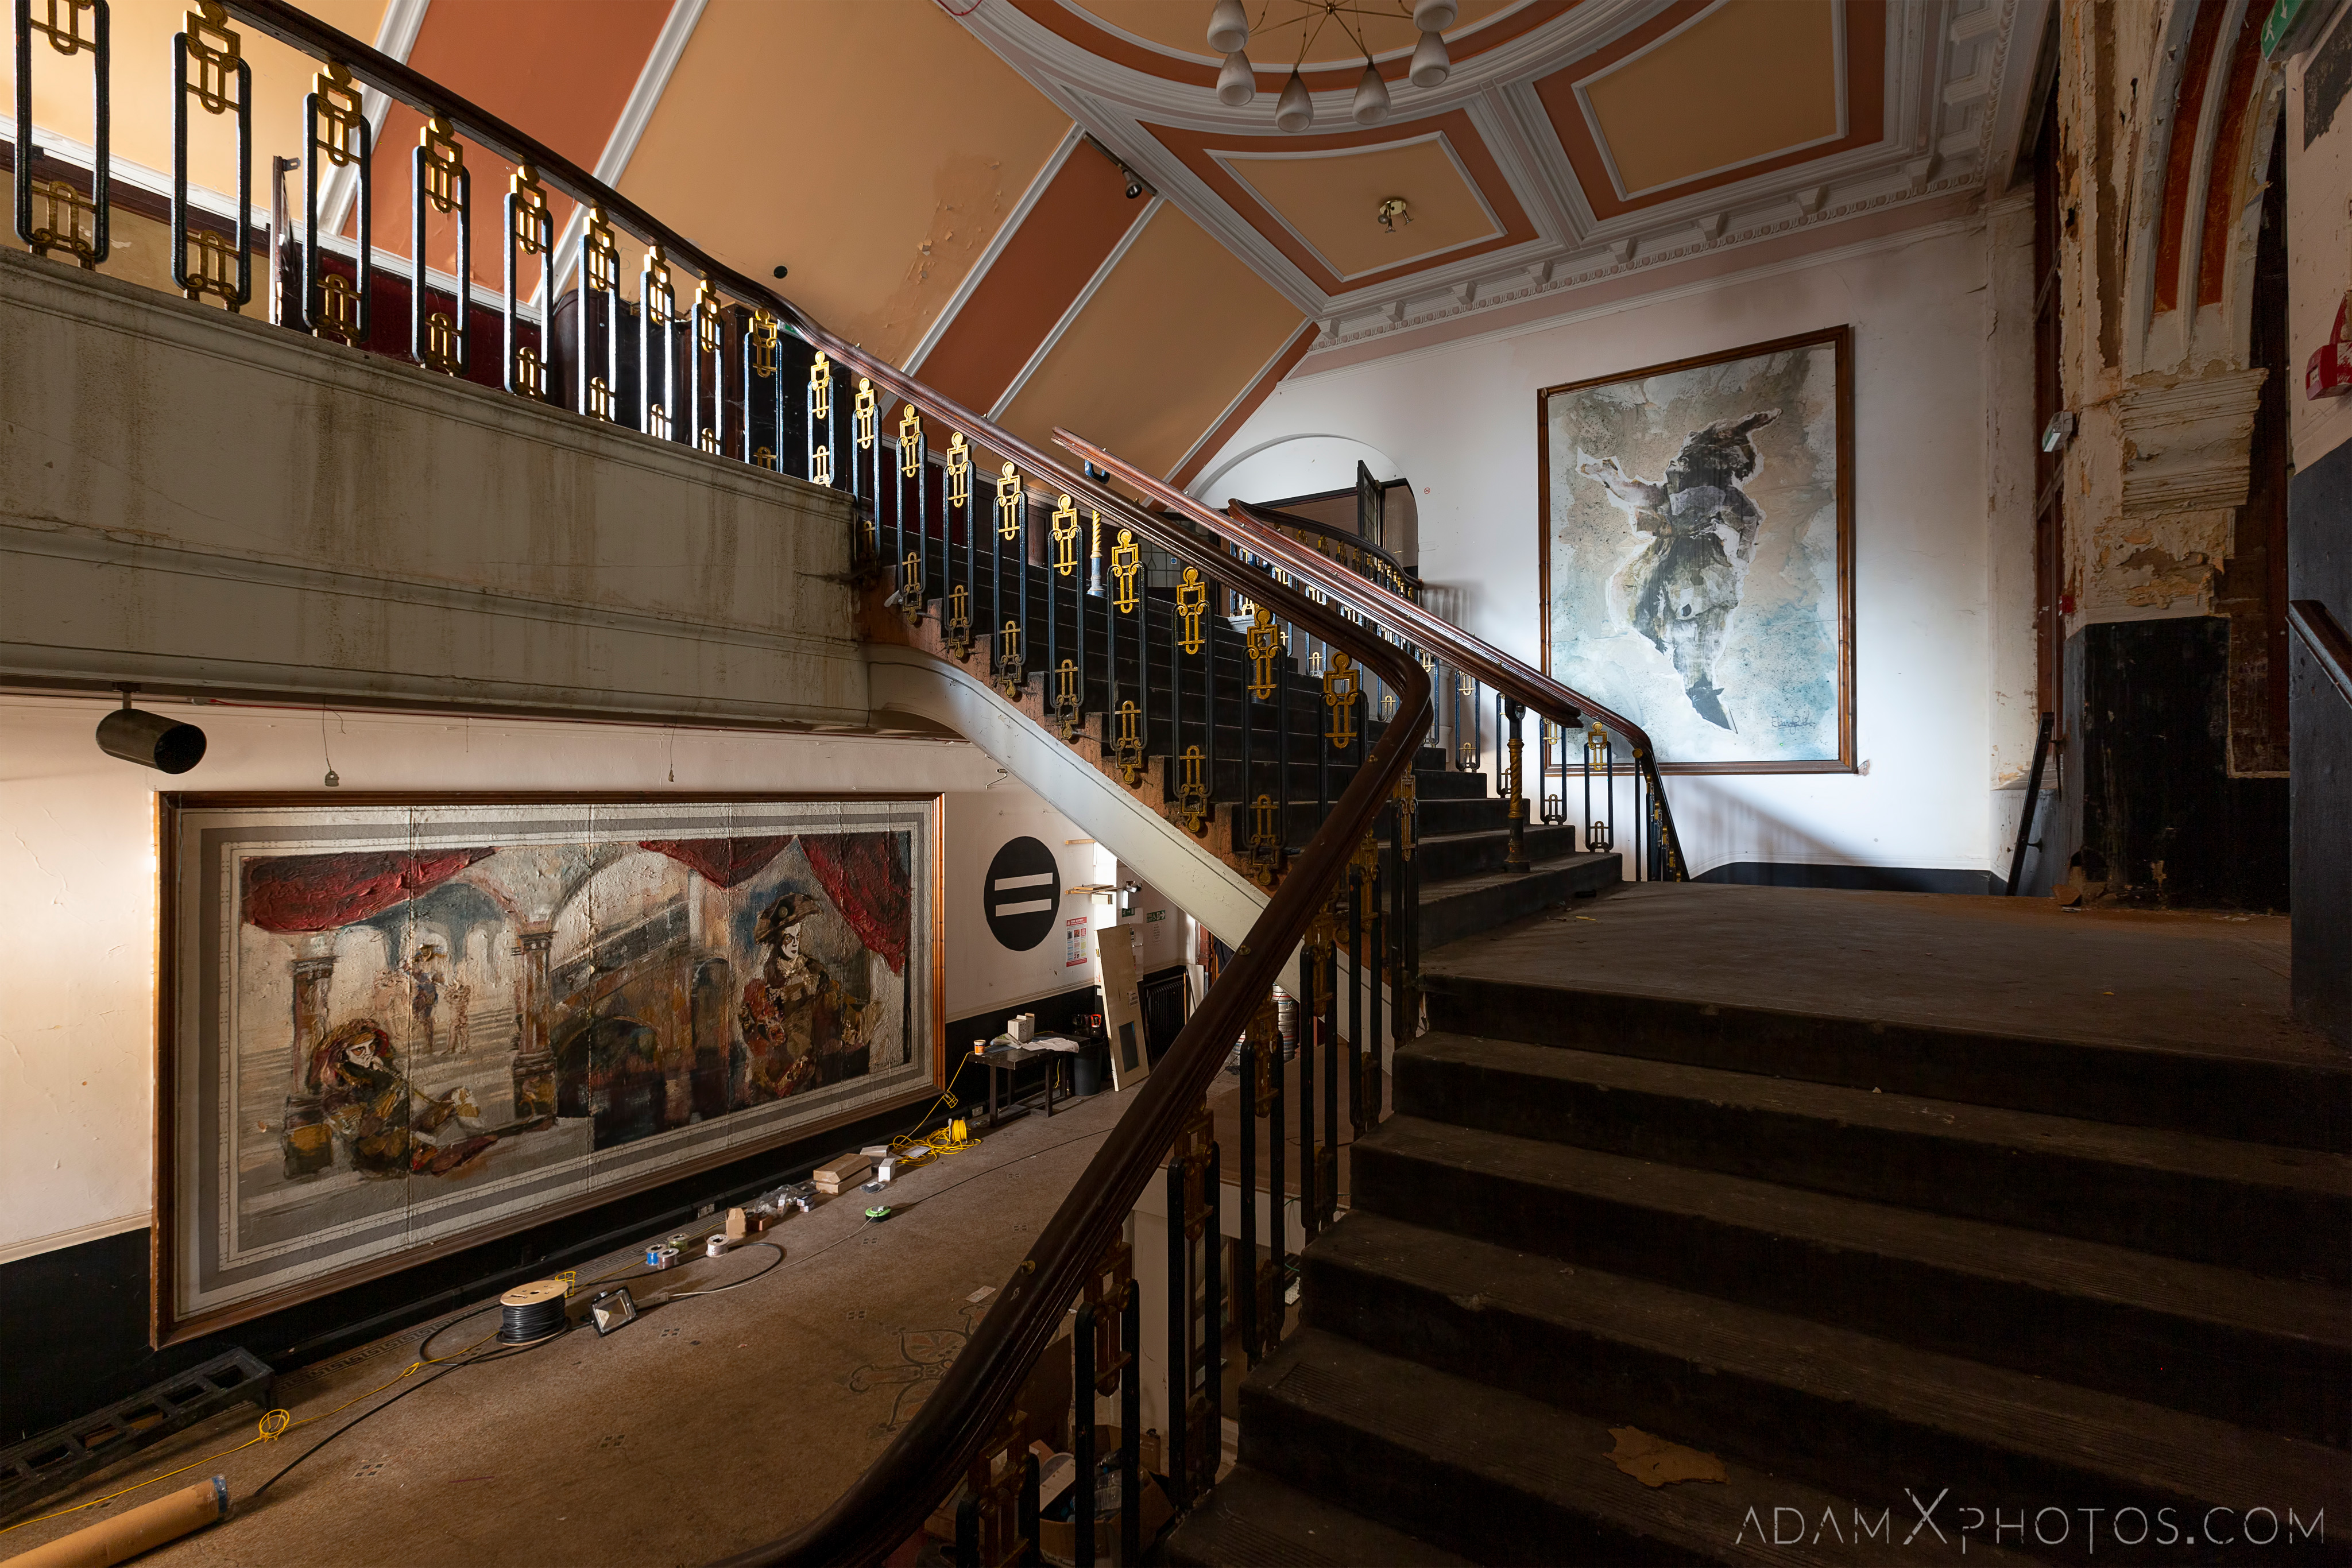 Lobby foyer painting Birmingham Methodist Central Hall Q Club Adam X Urbex Urban Exploration Access 2018 Abandoned decay lost forgotten derelict location creepy haunting eerie